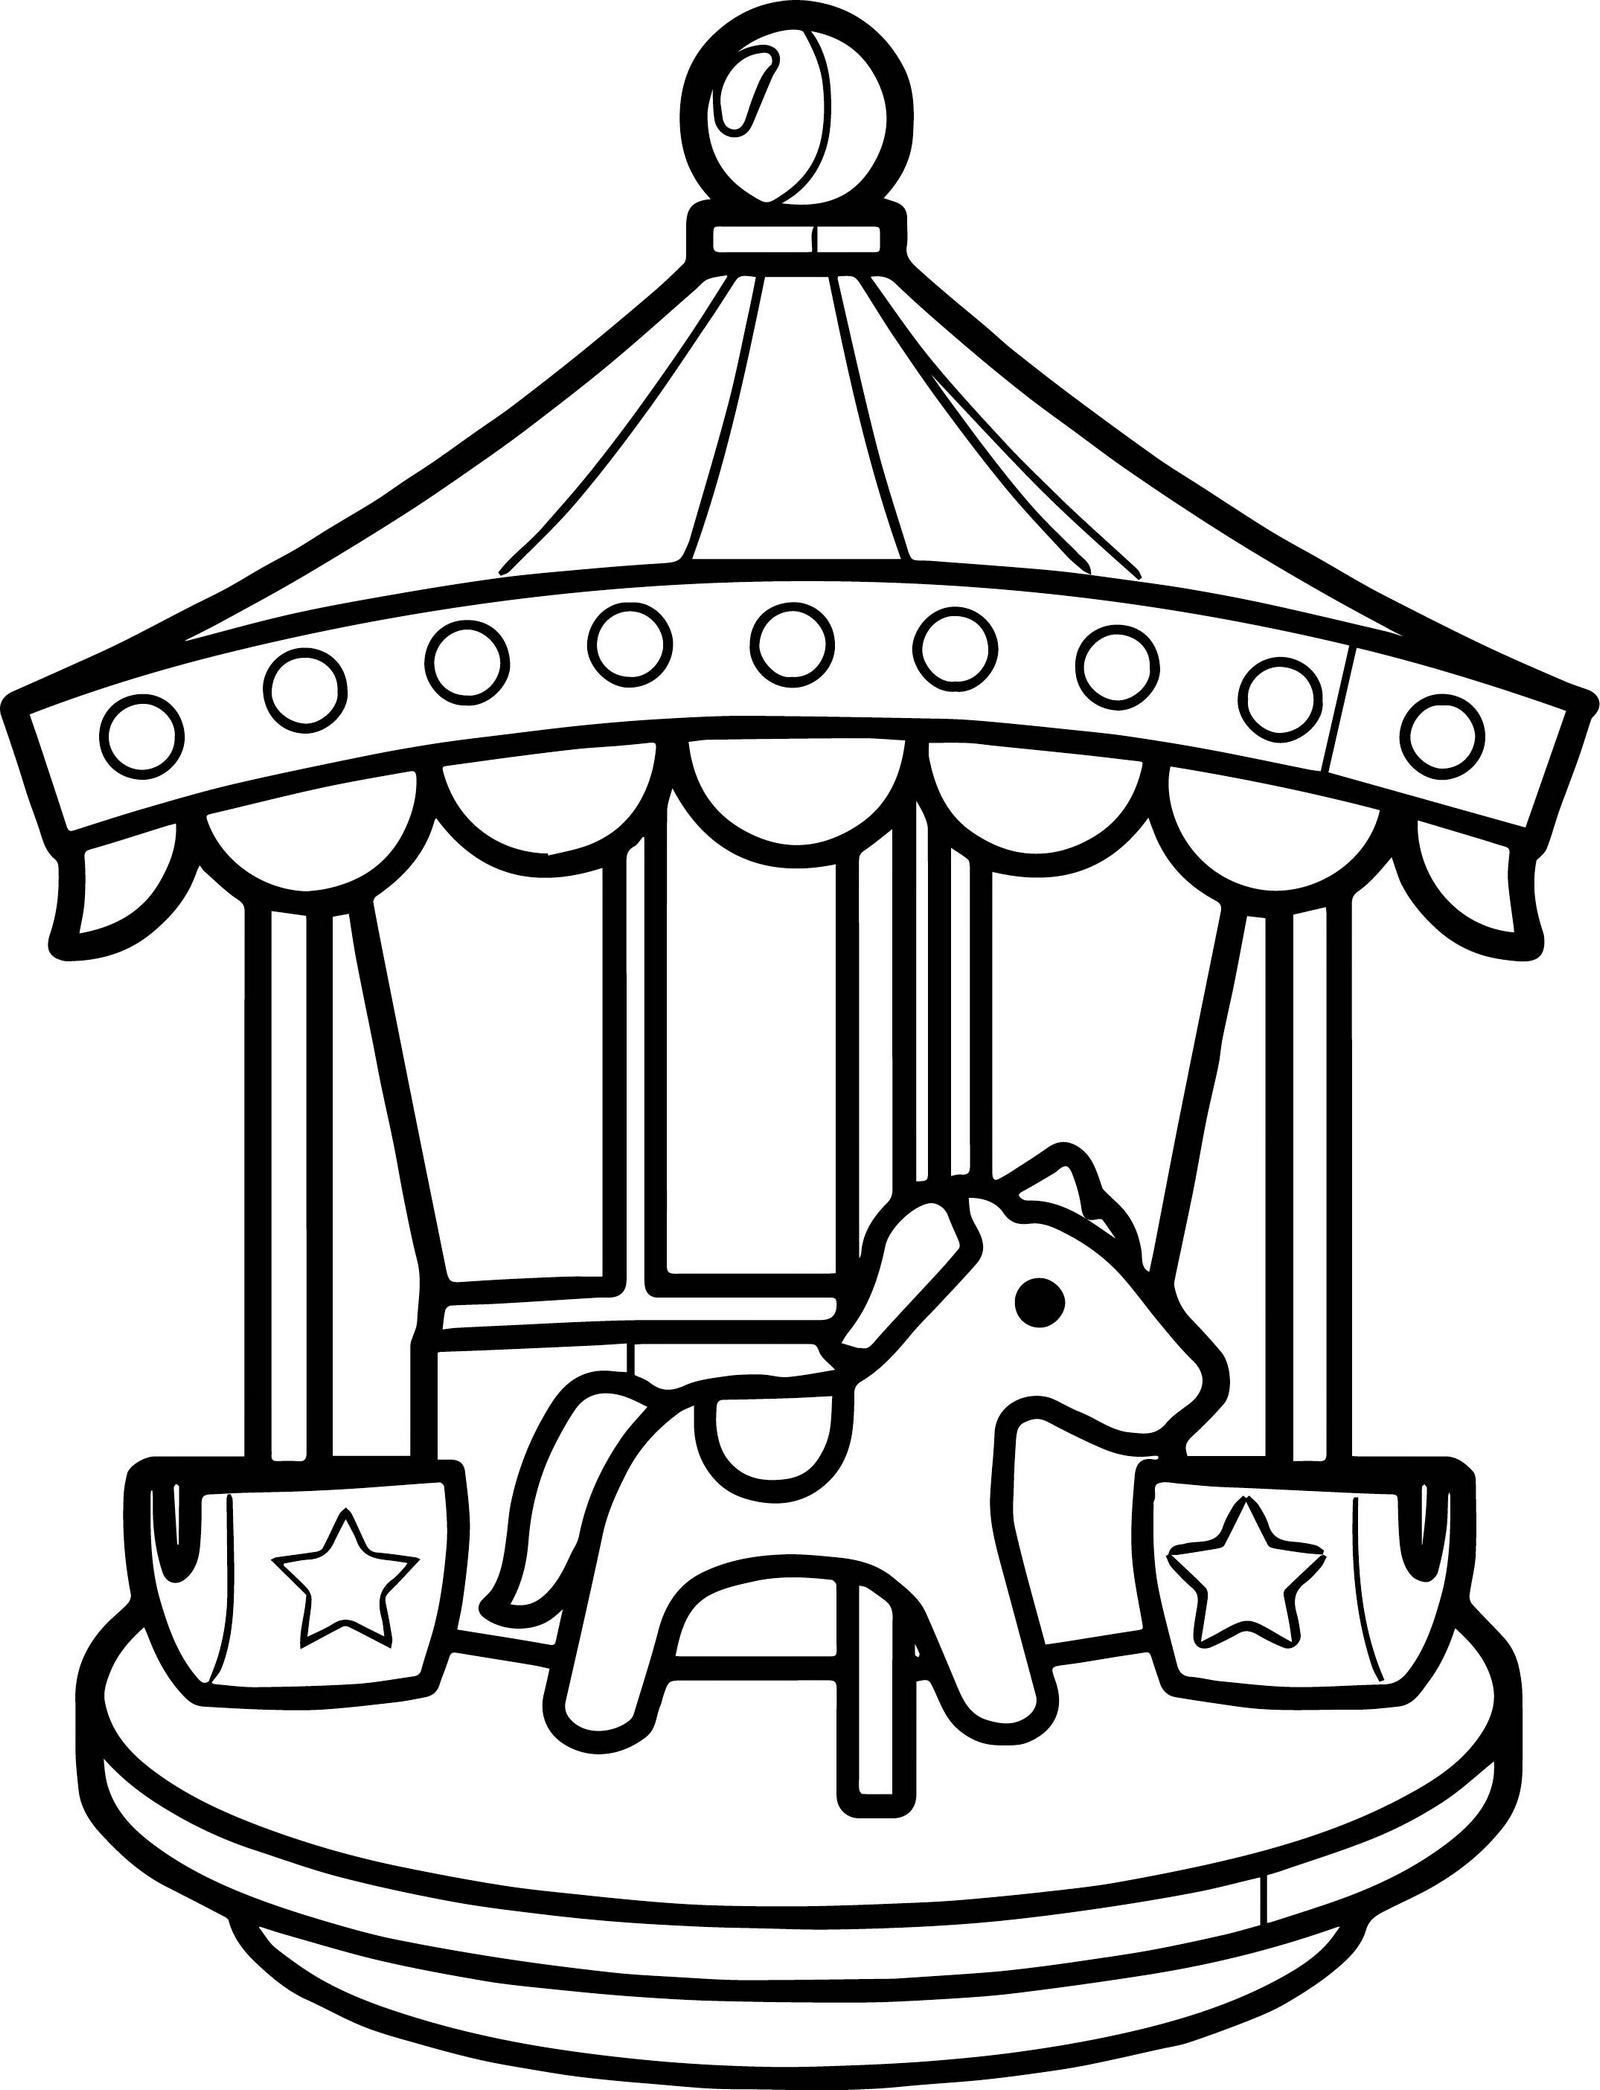 13 Meticulously Rendered Carousel Coloring Pages for Boys